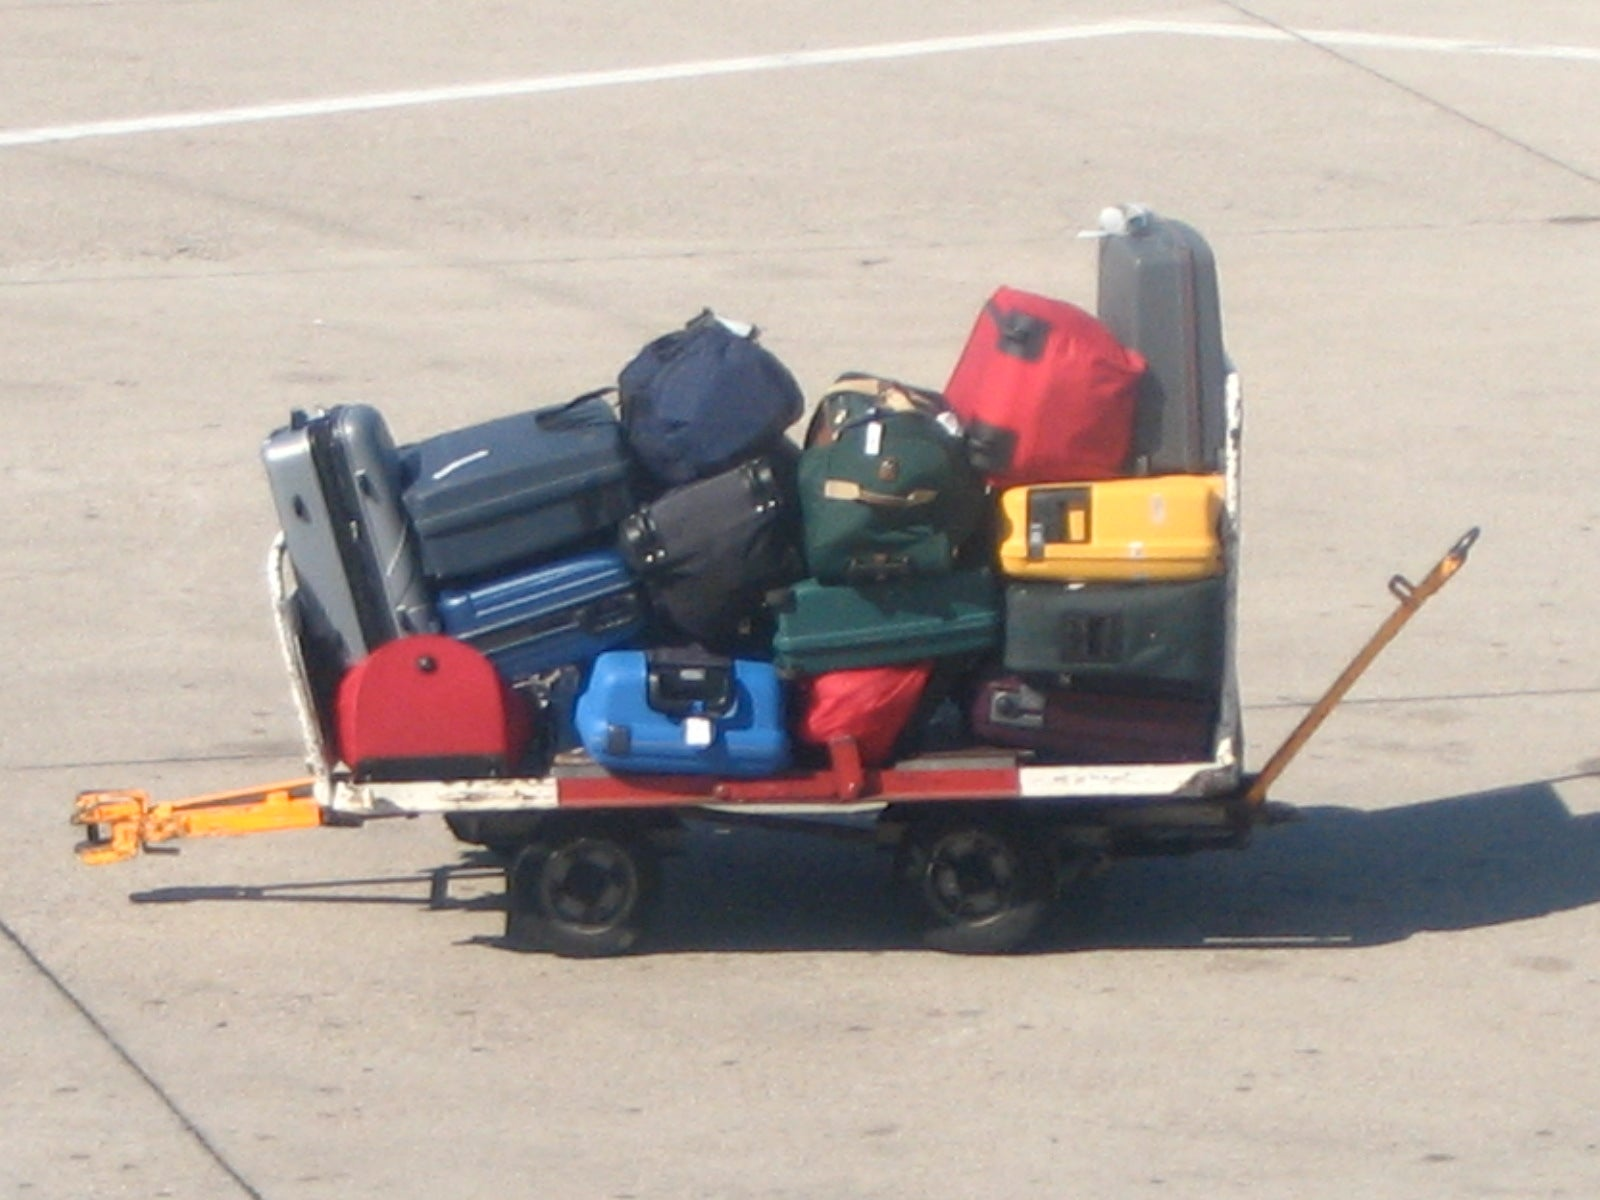 Smart Luggage May Check Itself In, Follow You Around